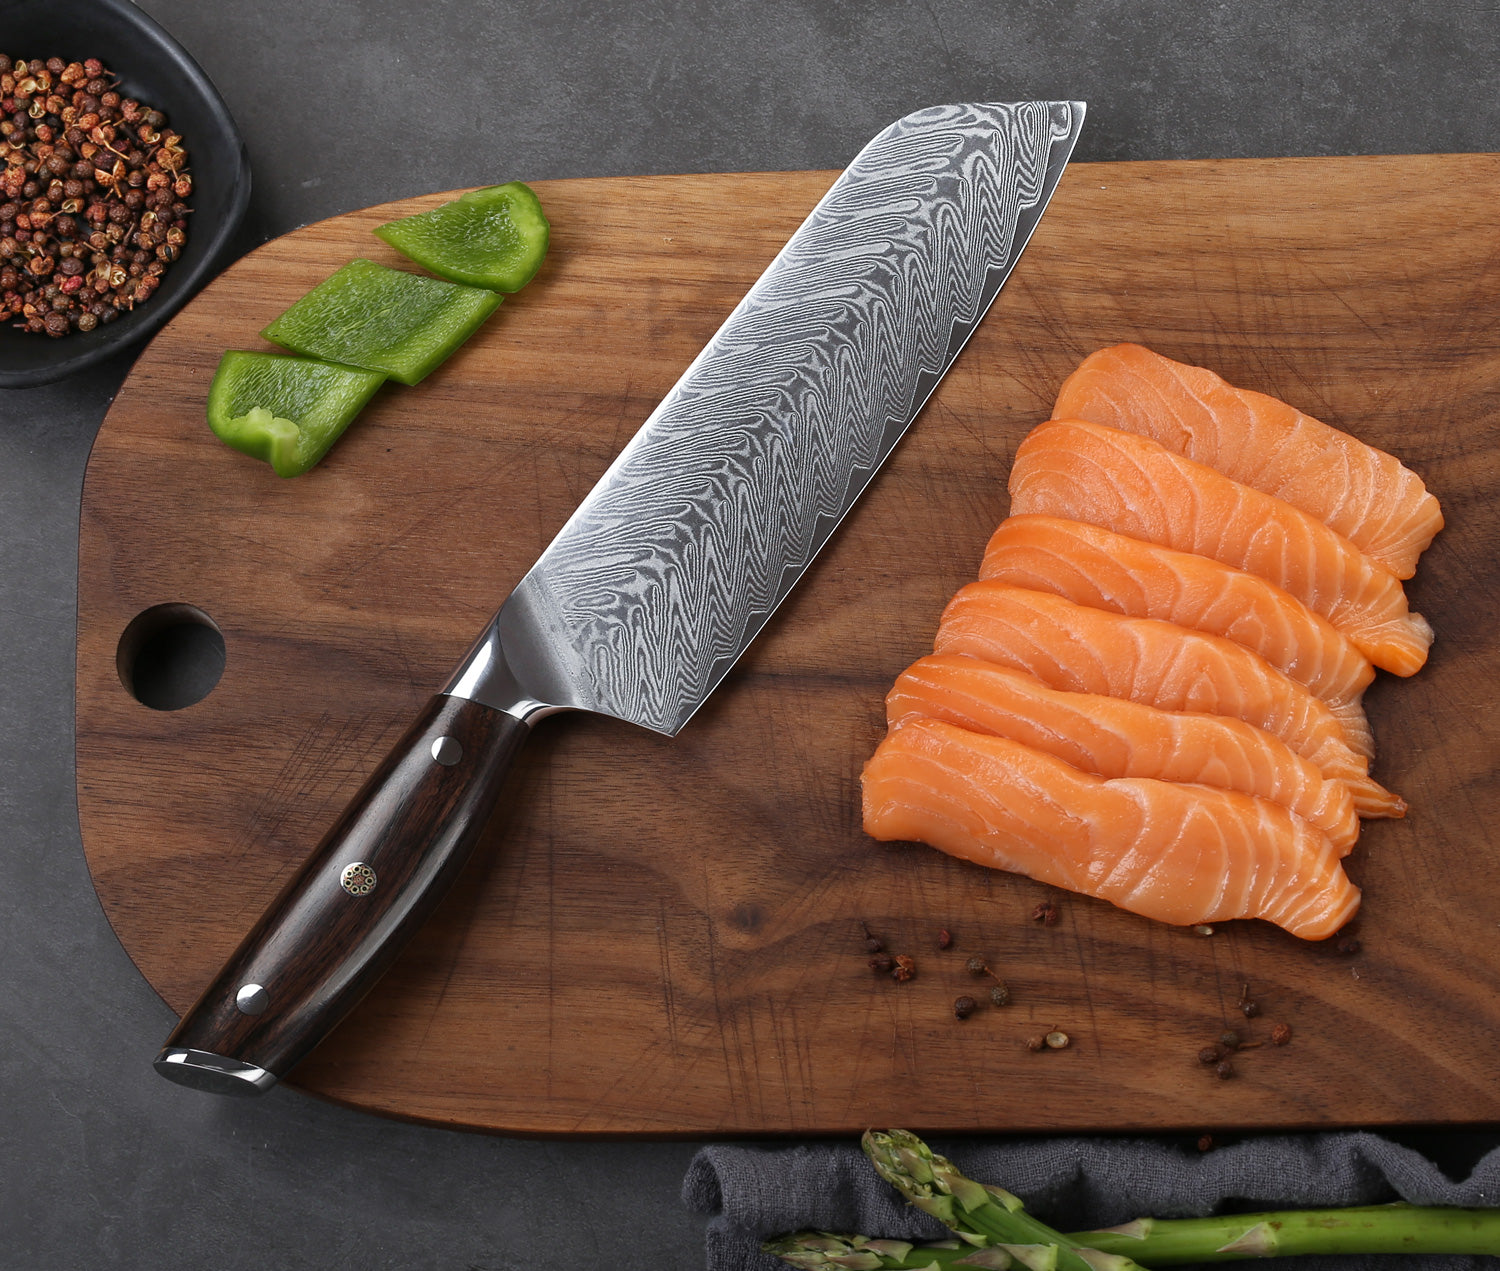 One-piece precision-stamped blade for a lighter weight knife without sacrificing strength